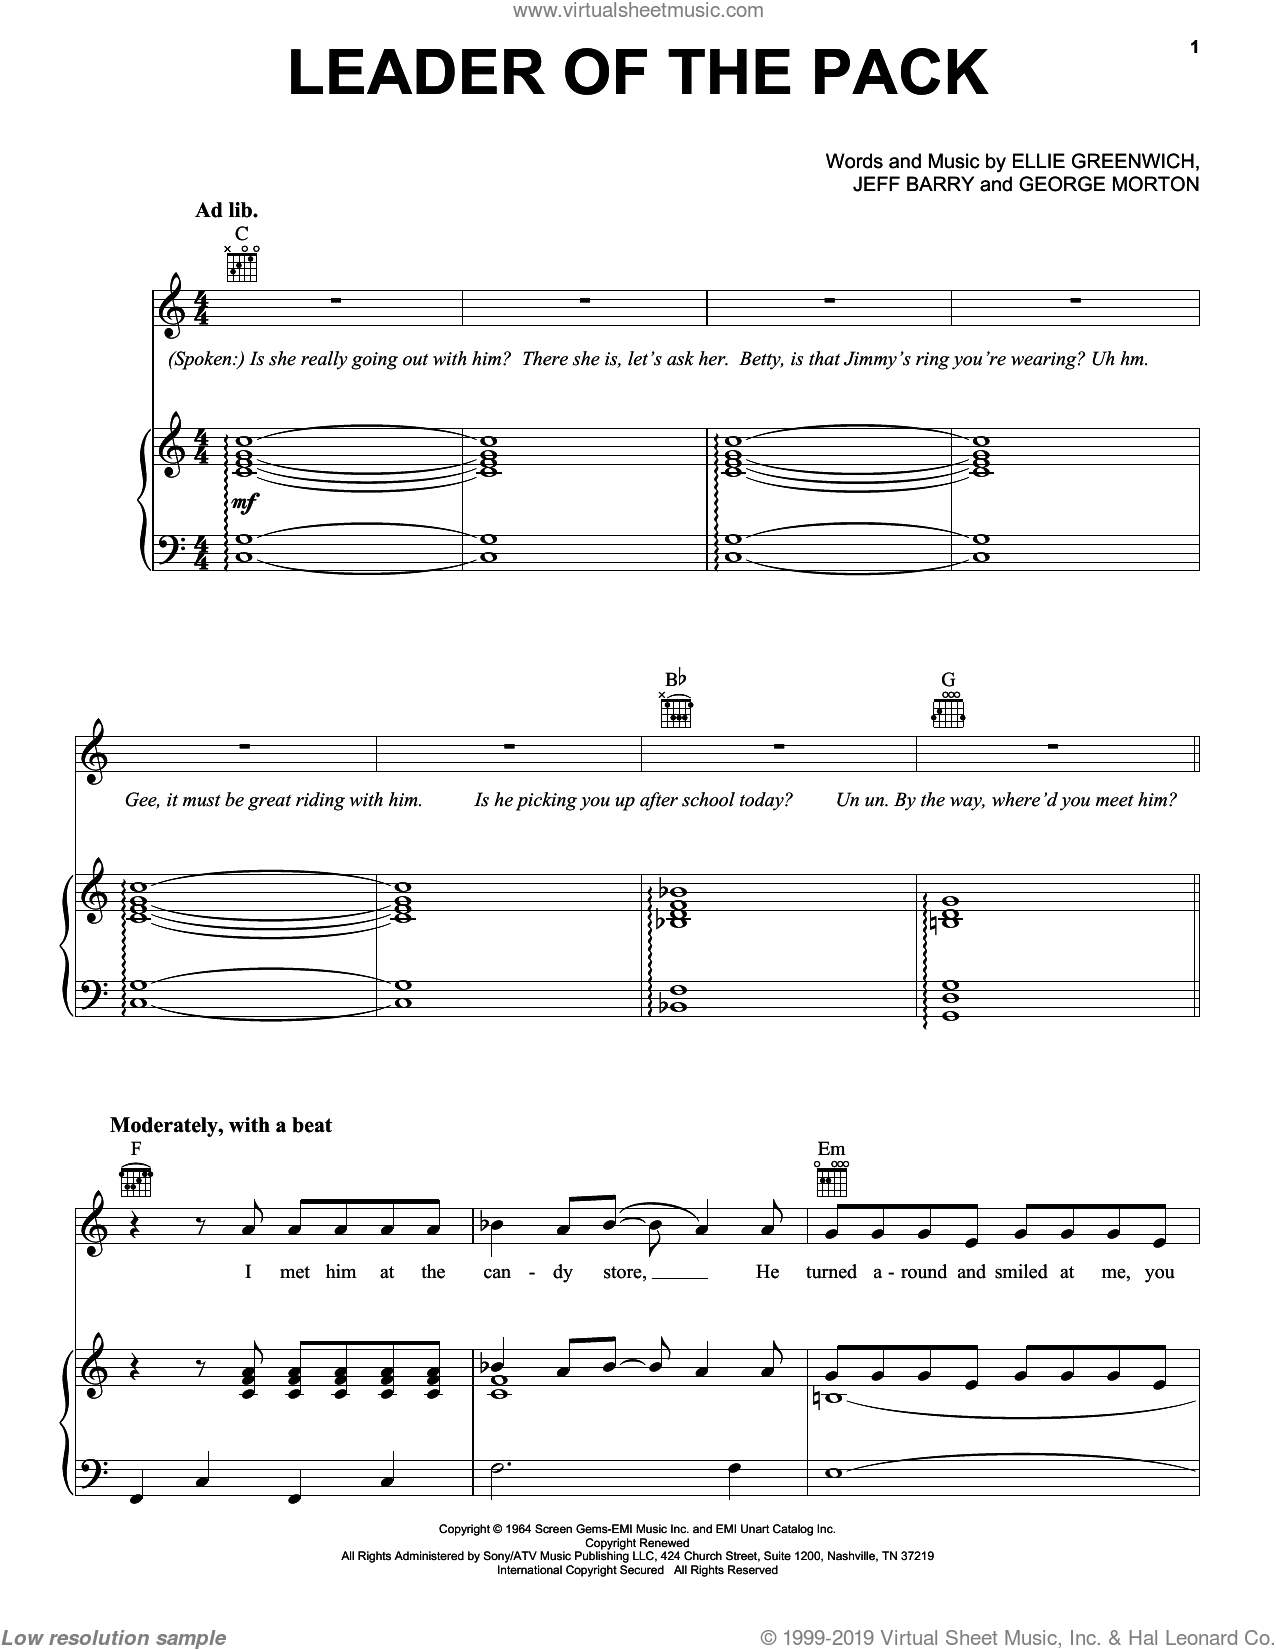 Leader Of The Pack sheet music for voice, piano or guitar by Jeff Barry and Ellie Greenwich. Score Image Preview.